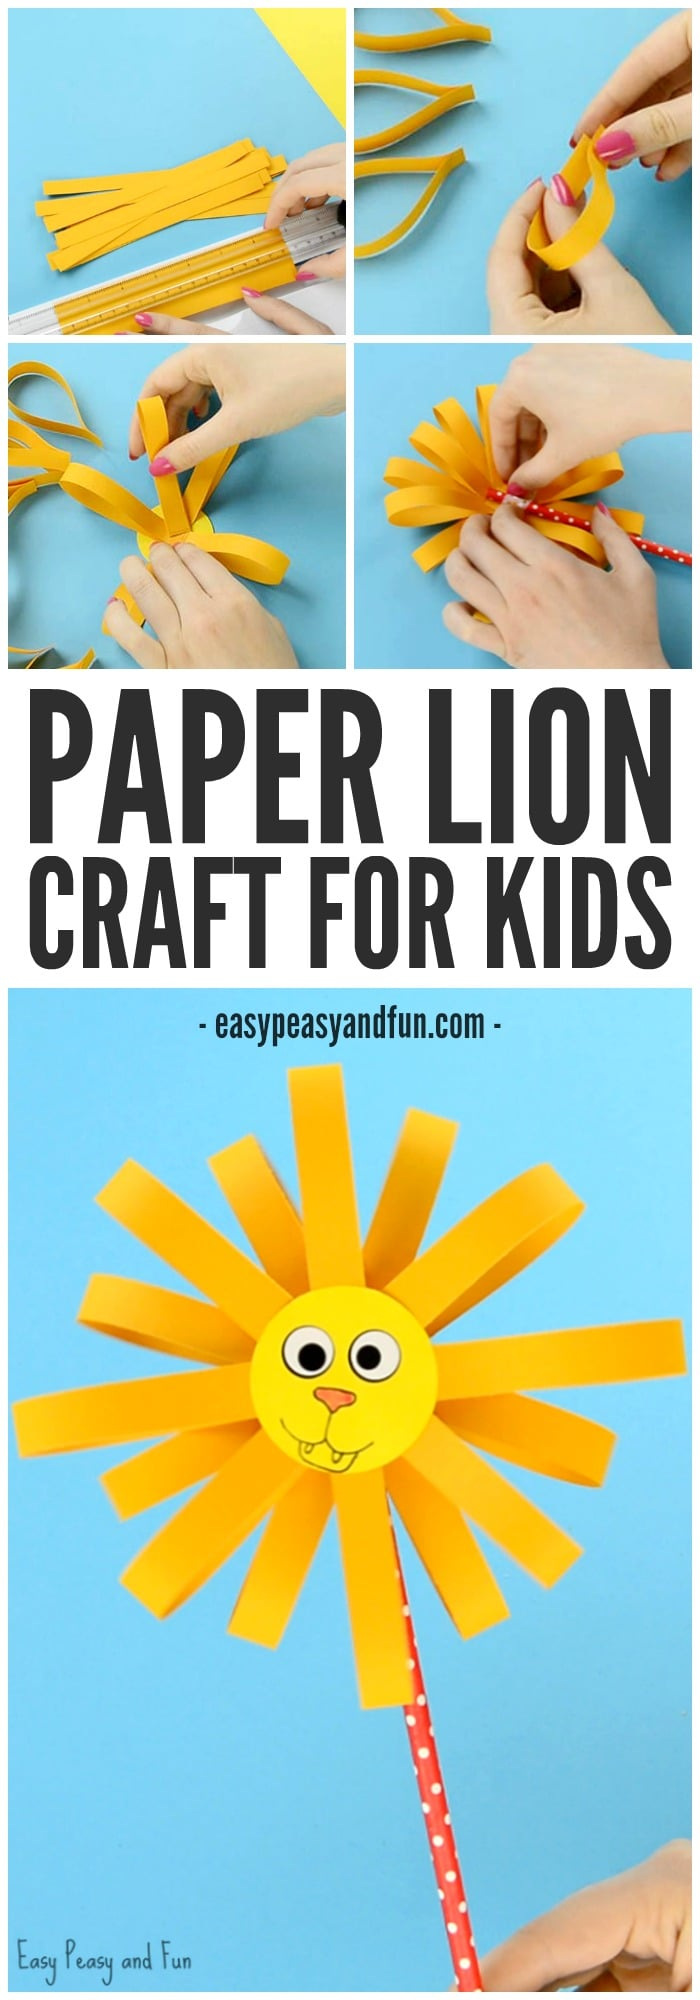 Cute Paper Lion Craft for Kids to Make